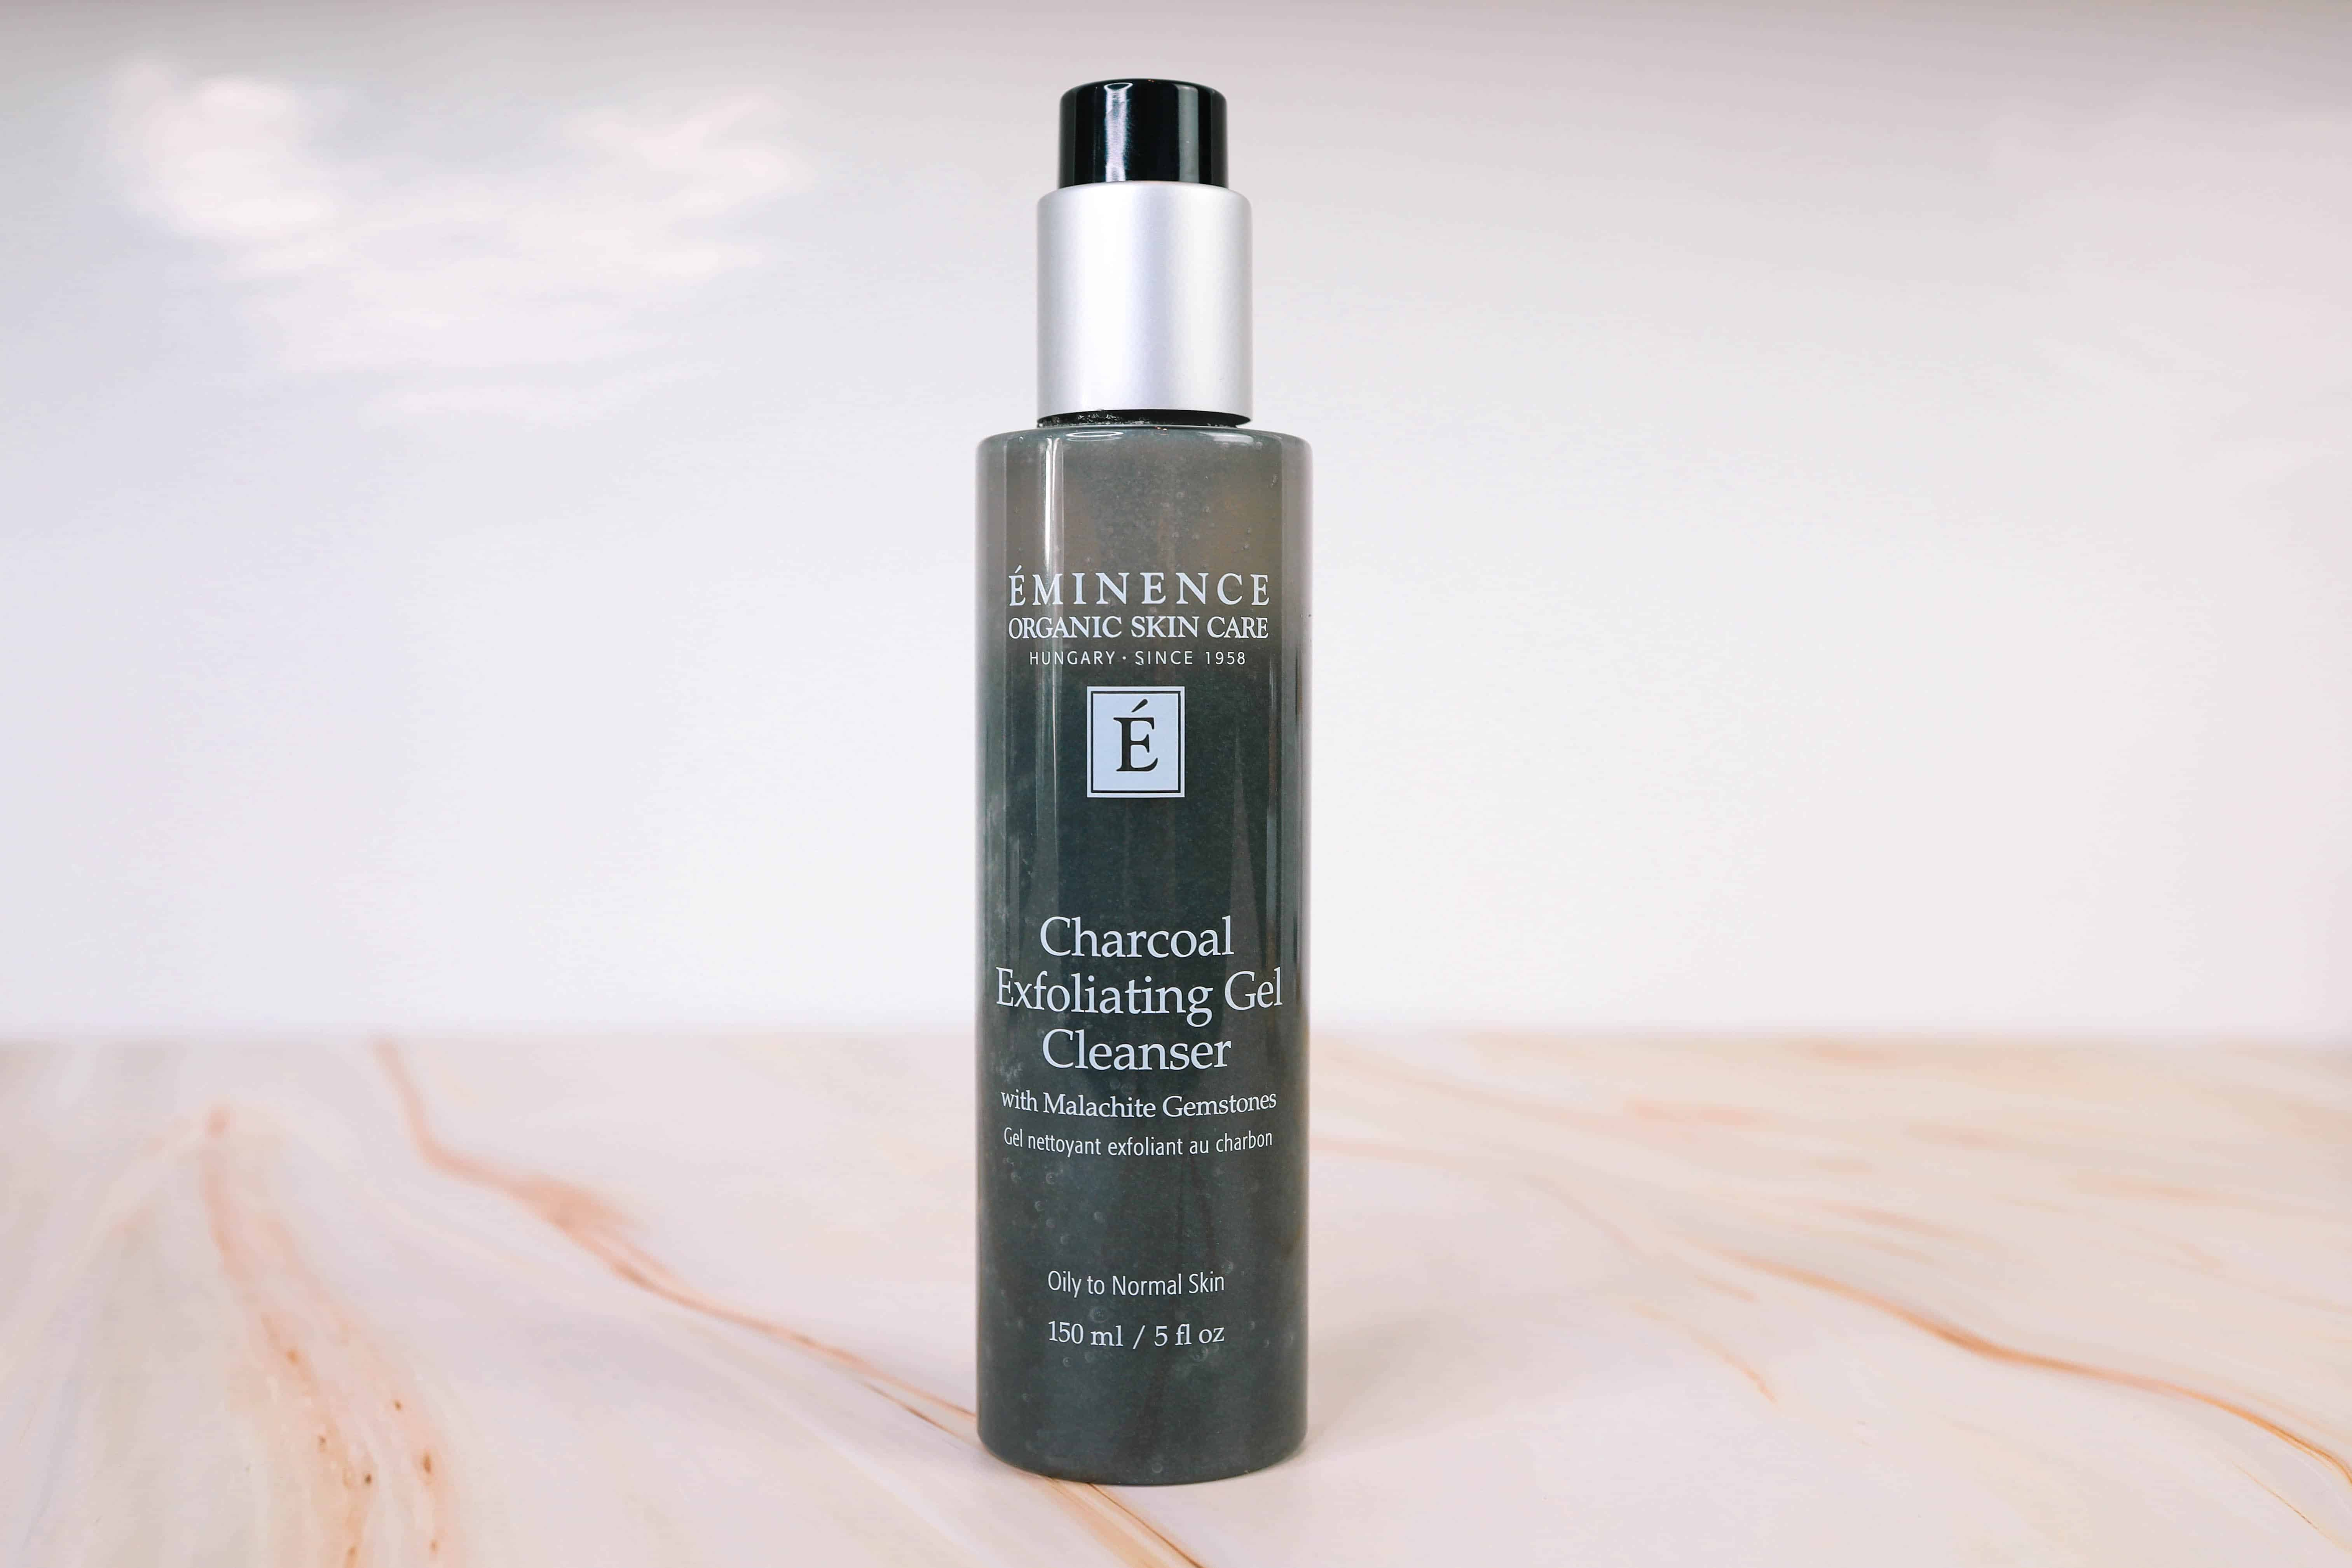 Eminence Organic Skin Care Charcoal Exfoliating Gel Cleanser with Malachite Gemstones